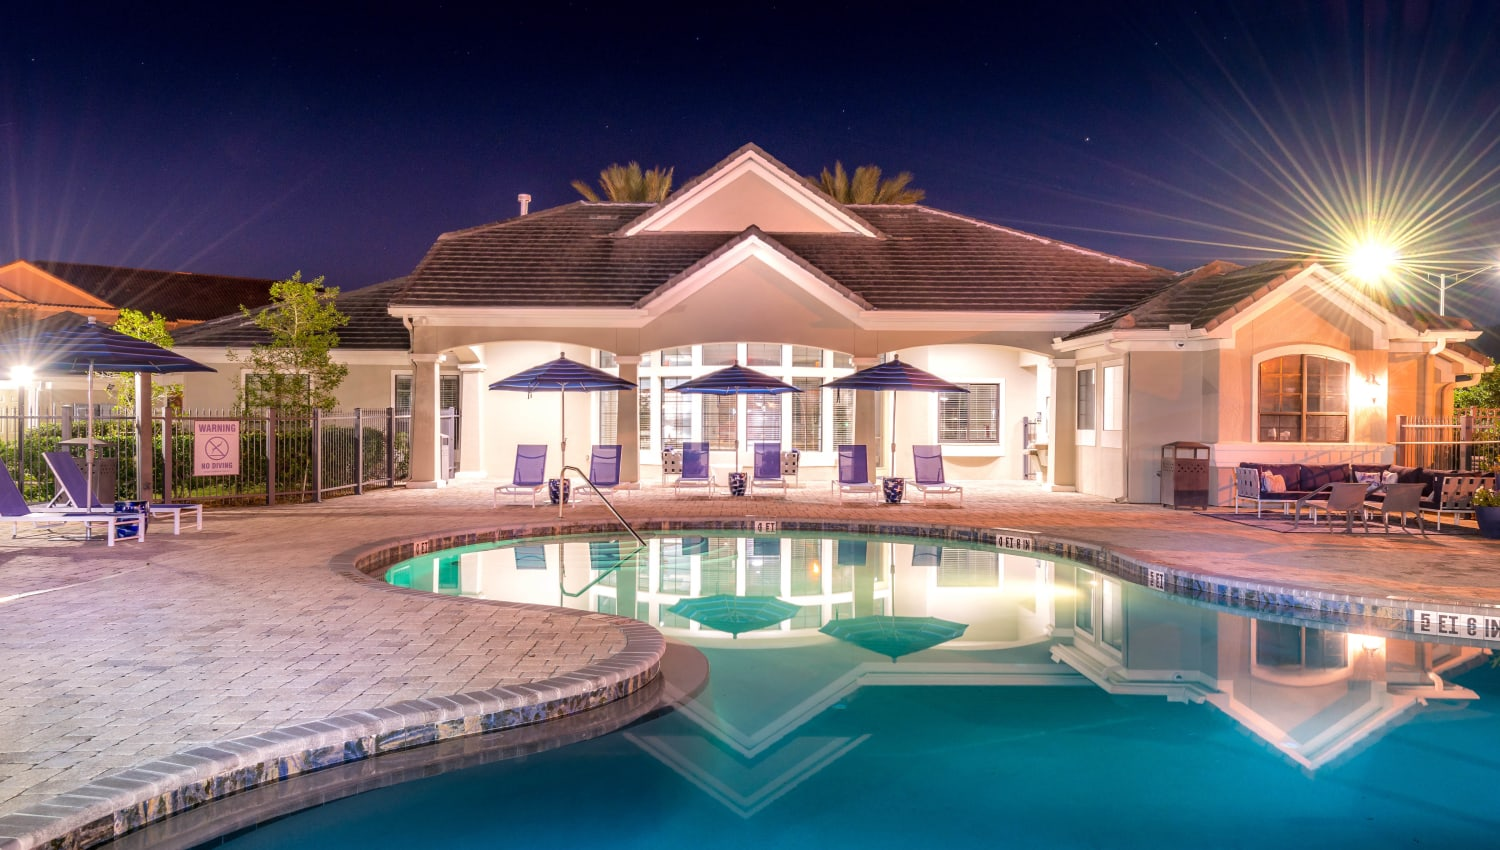 View of the clubhouse from the pool in the evening at Mirador & Stovall at River City in Jacksonville, Florida